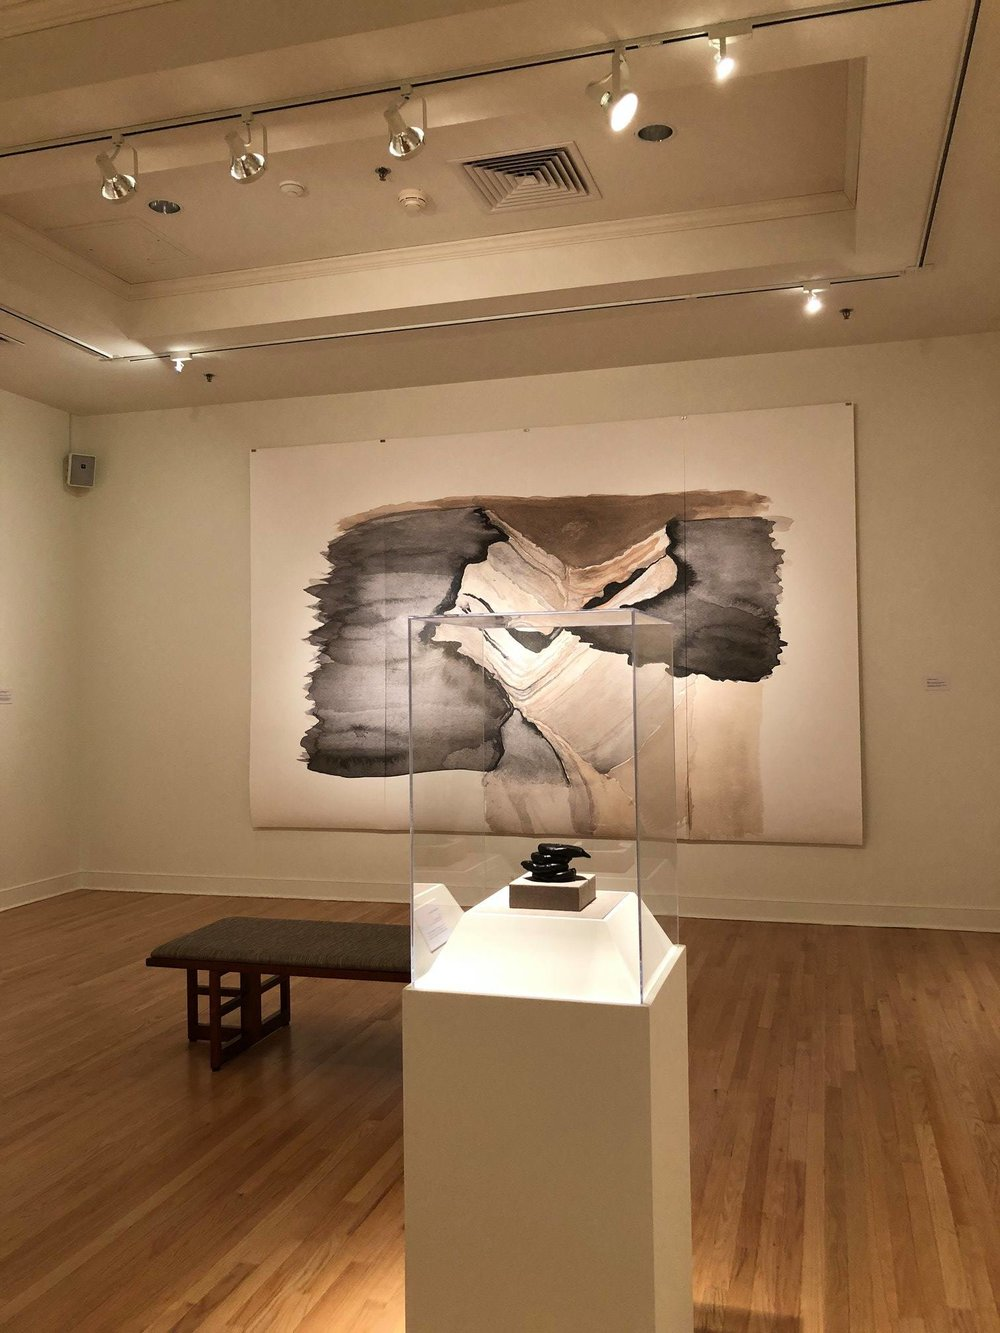 Maria Chavez,   Topography of Sound: Peaks and Valleys Series,  Installation view, 2018  Image courtesy of the artist and University of Richmond Museums